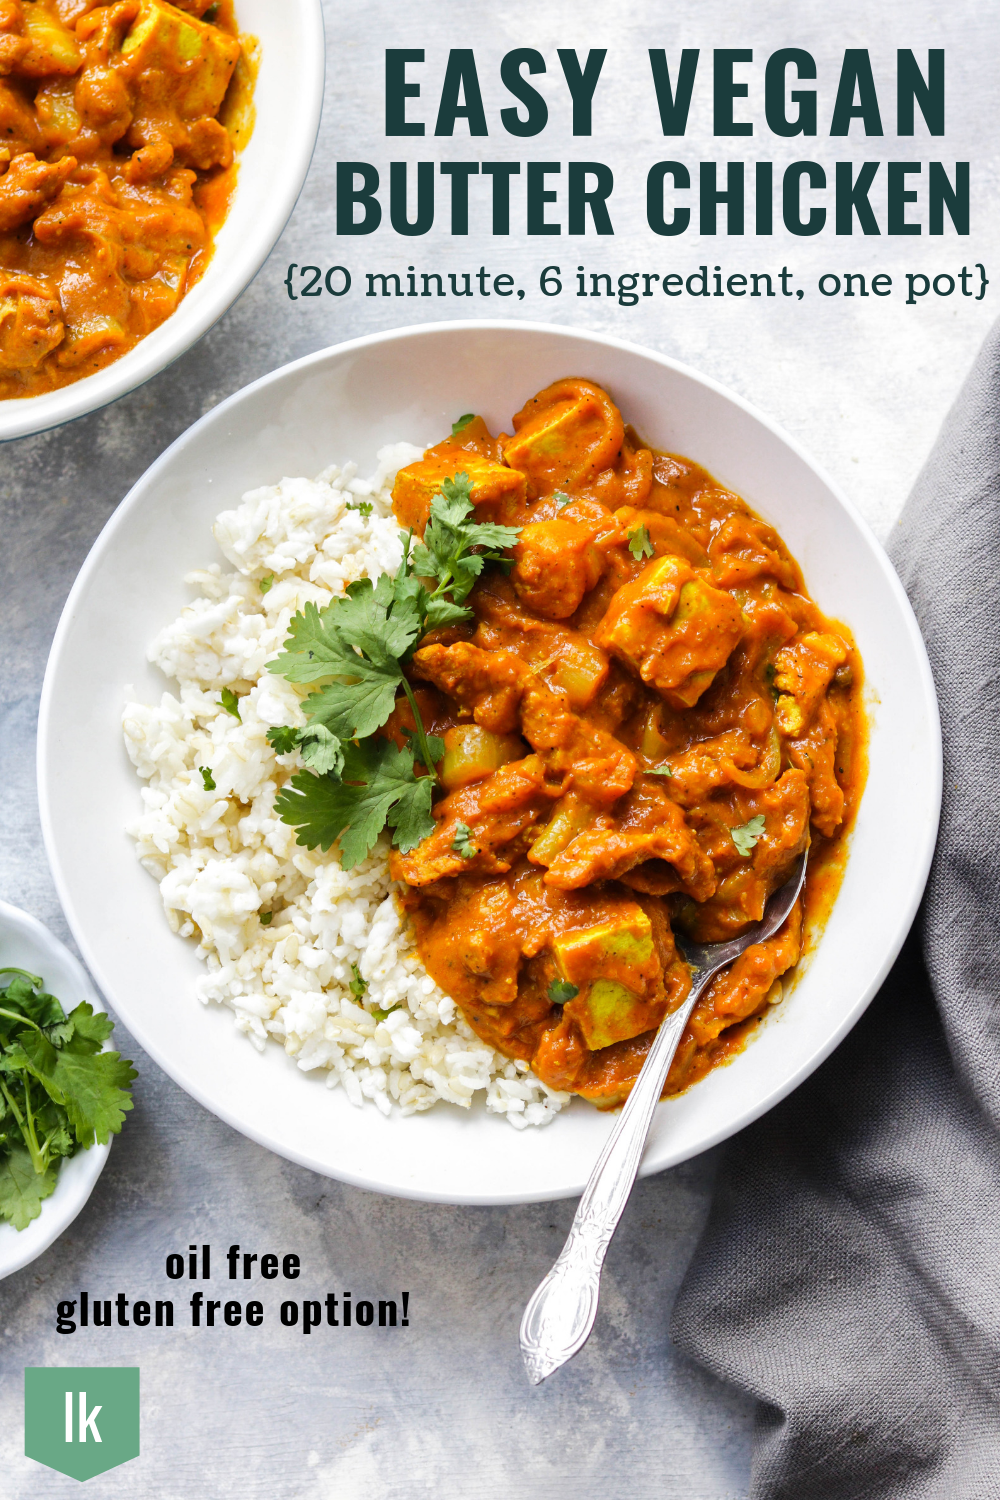 Easy One Pot 20 Minute Vegan Butter Chicken.png